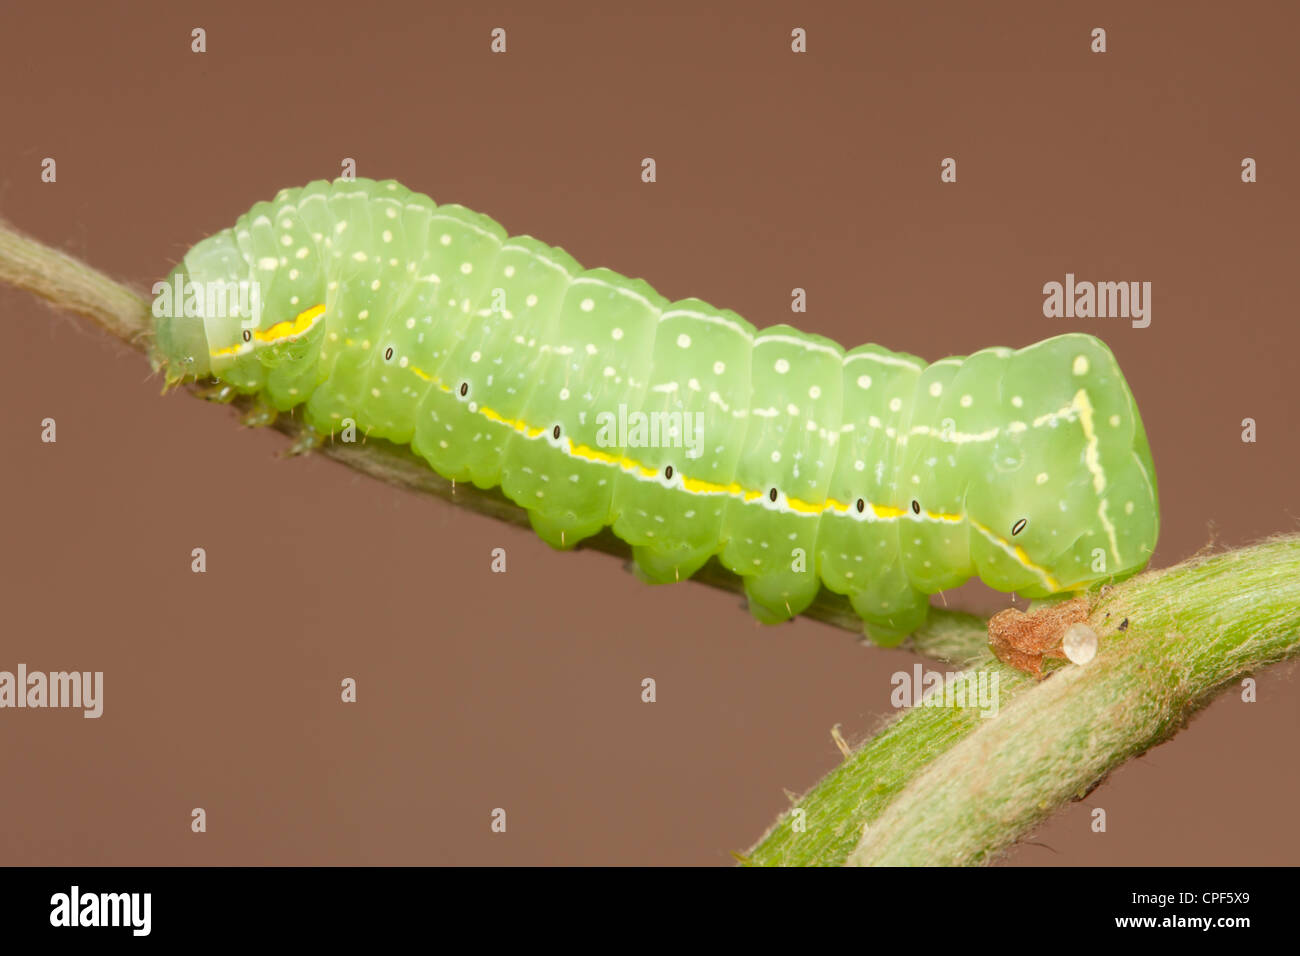 A Copper Underwing Moth (Amphipyra pyramidoides) caterpillar (larva) on a wild grape plant - Stock Image